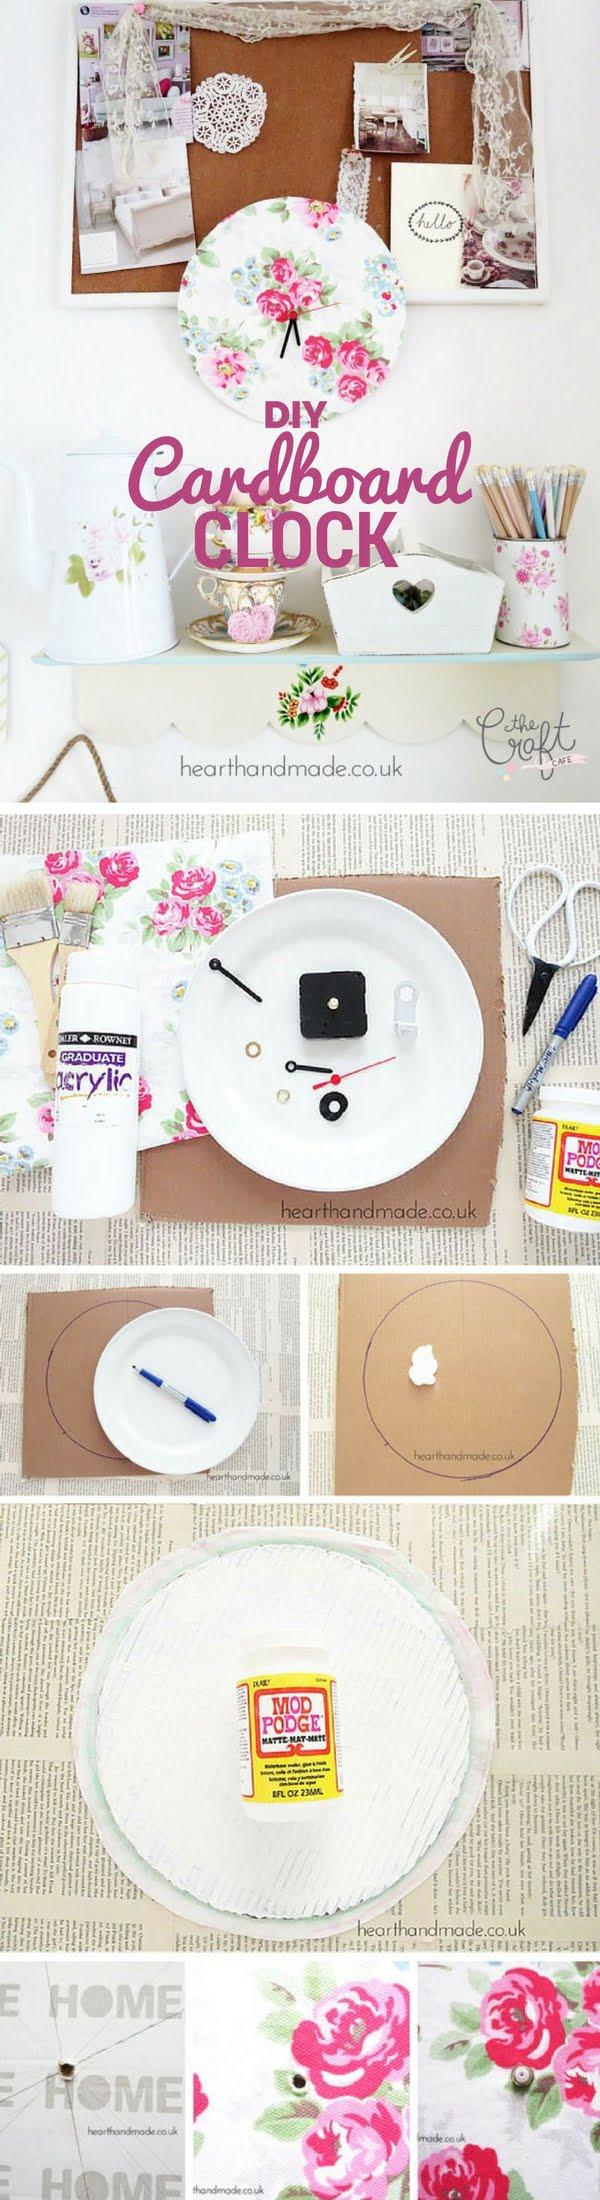 Check out how to make an easy DIY Shabby Chic Cardboard Clock